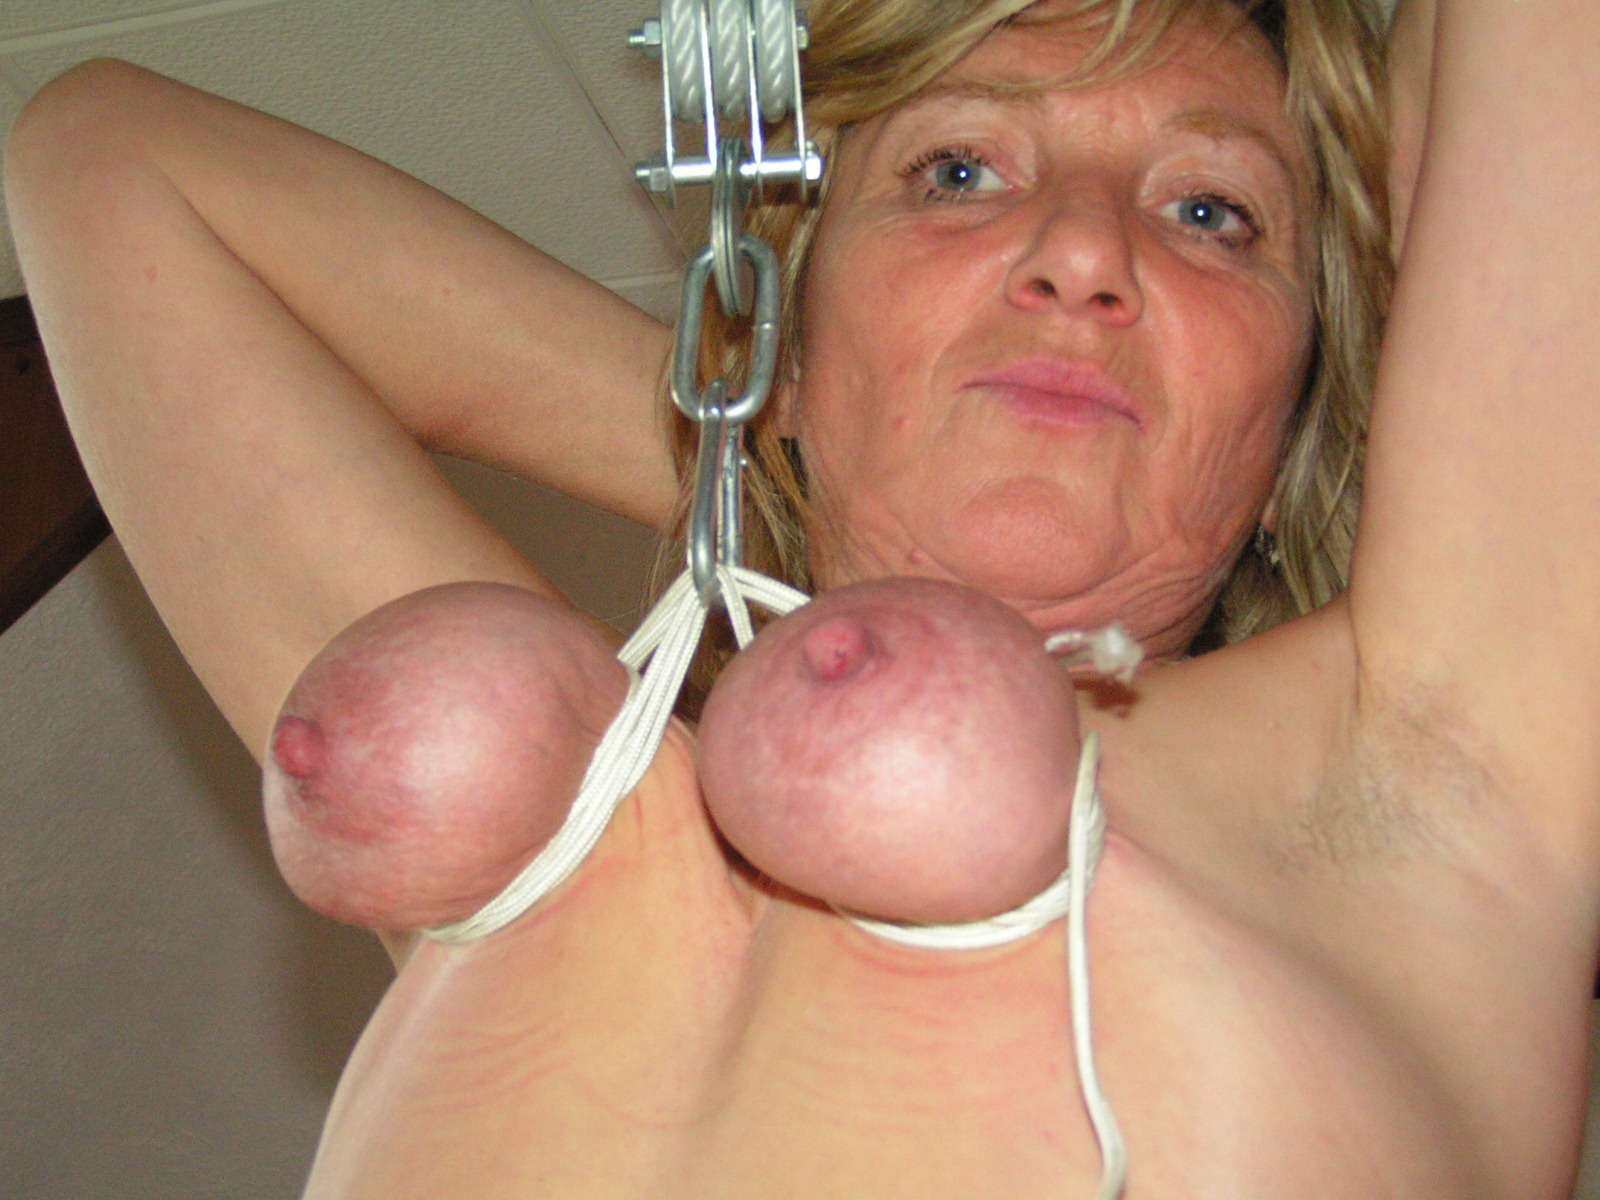 And thought. Breast suspension tit hanging bdsm